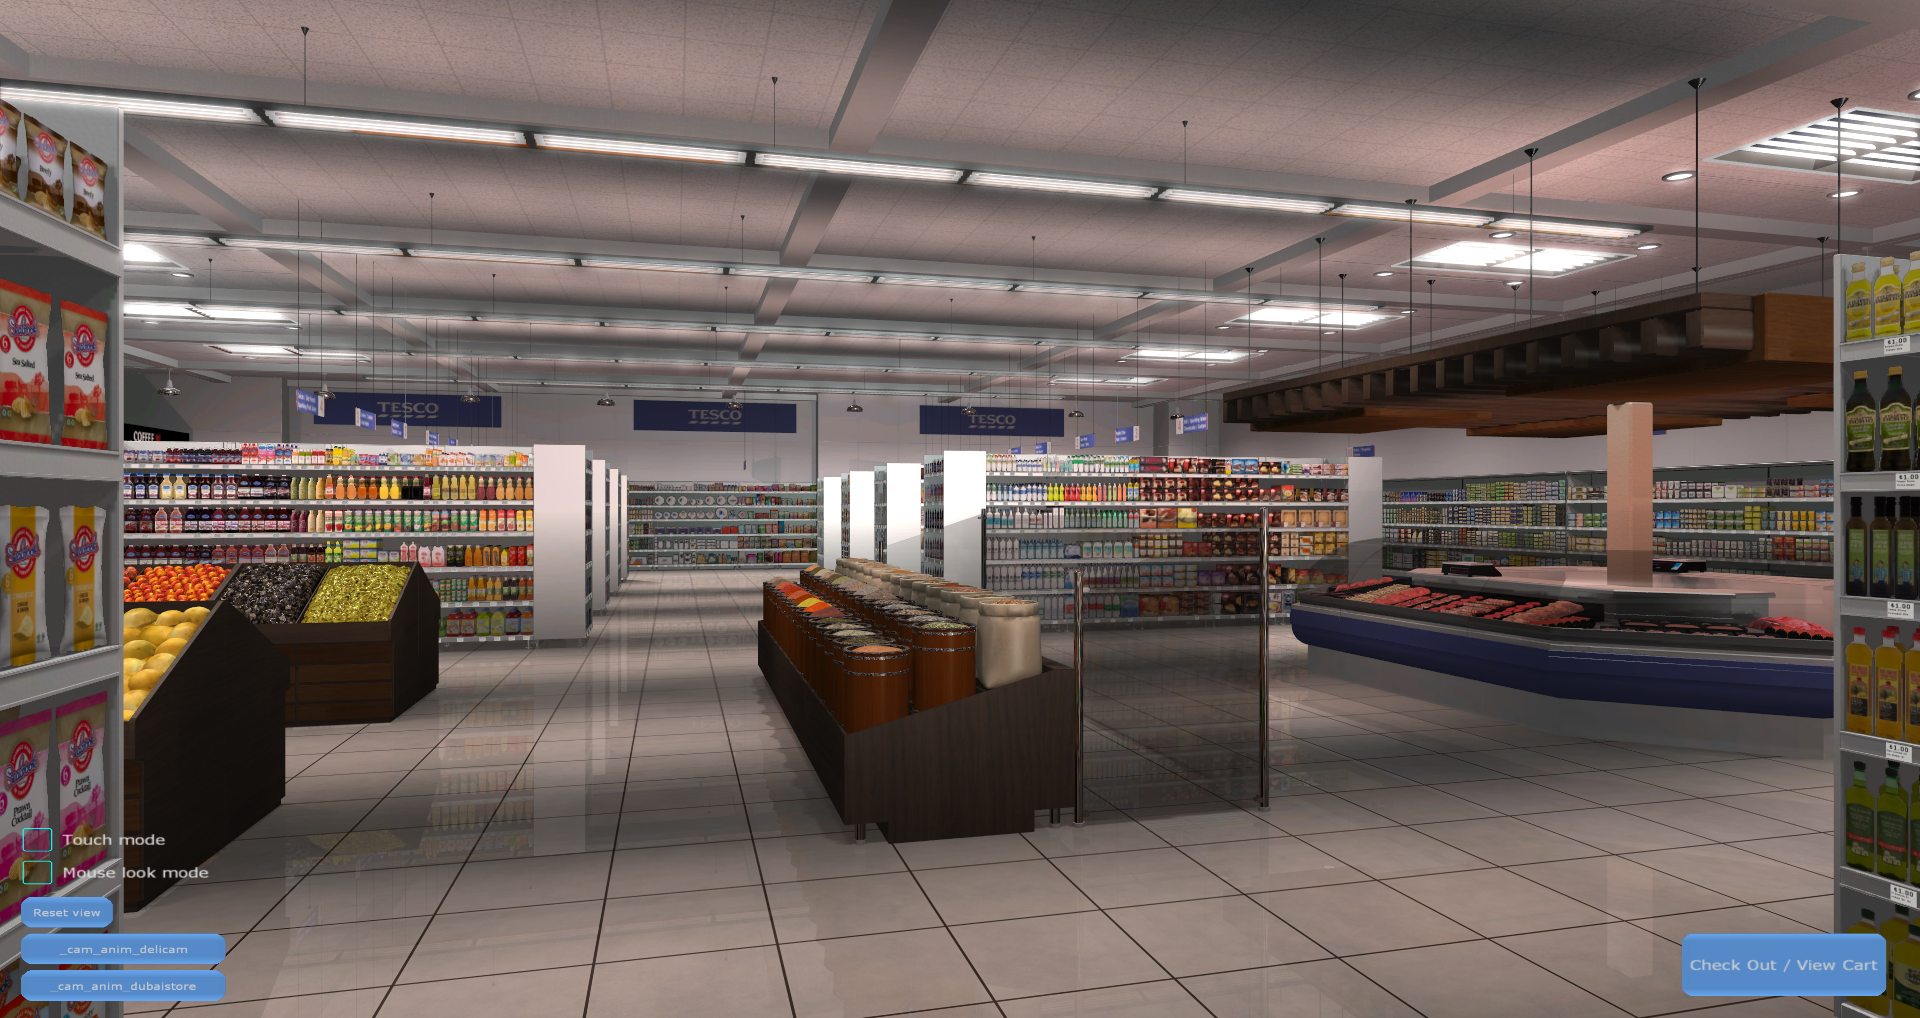 3D Shopping Virtual Store Screenshot from Carrefour VR Supermarket 4